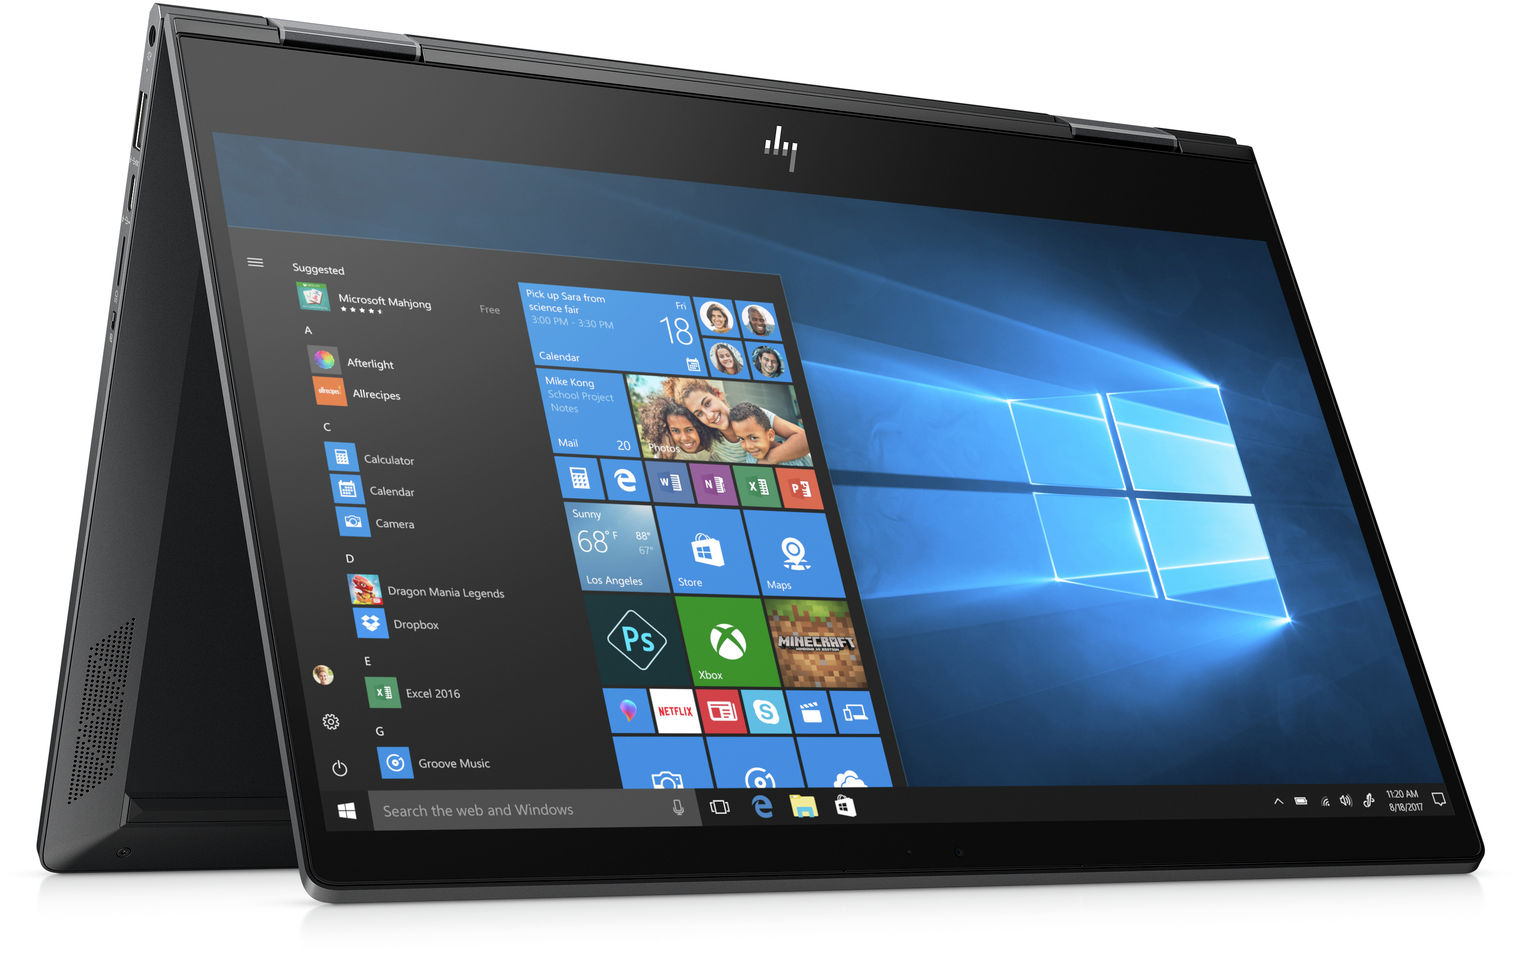 Laptop HP ENVY x360 13-ar0021nw 155G6EA